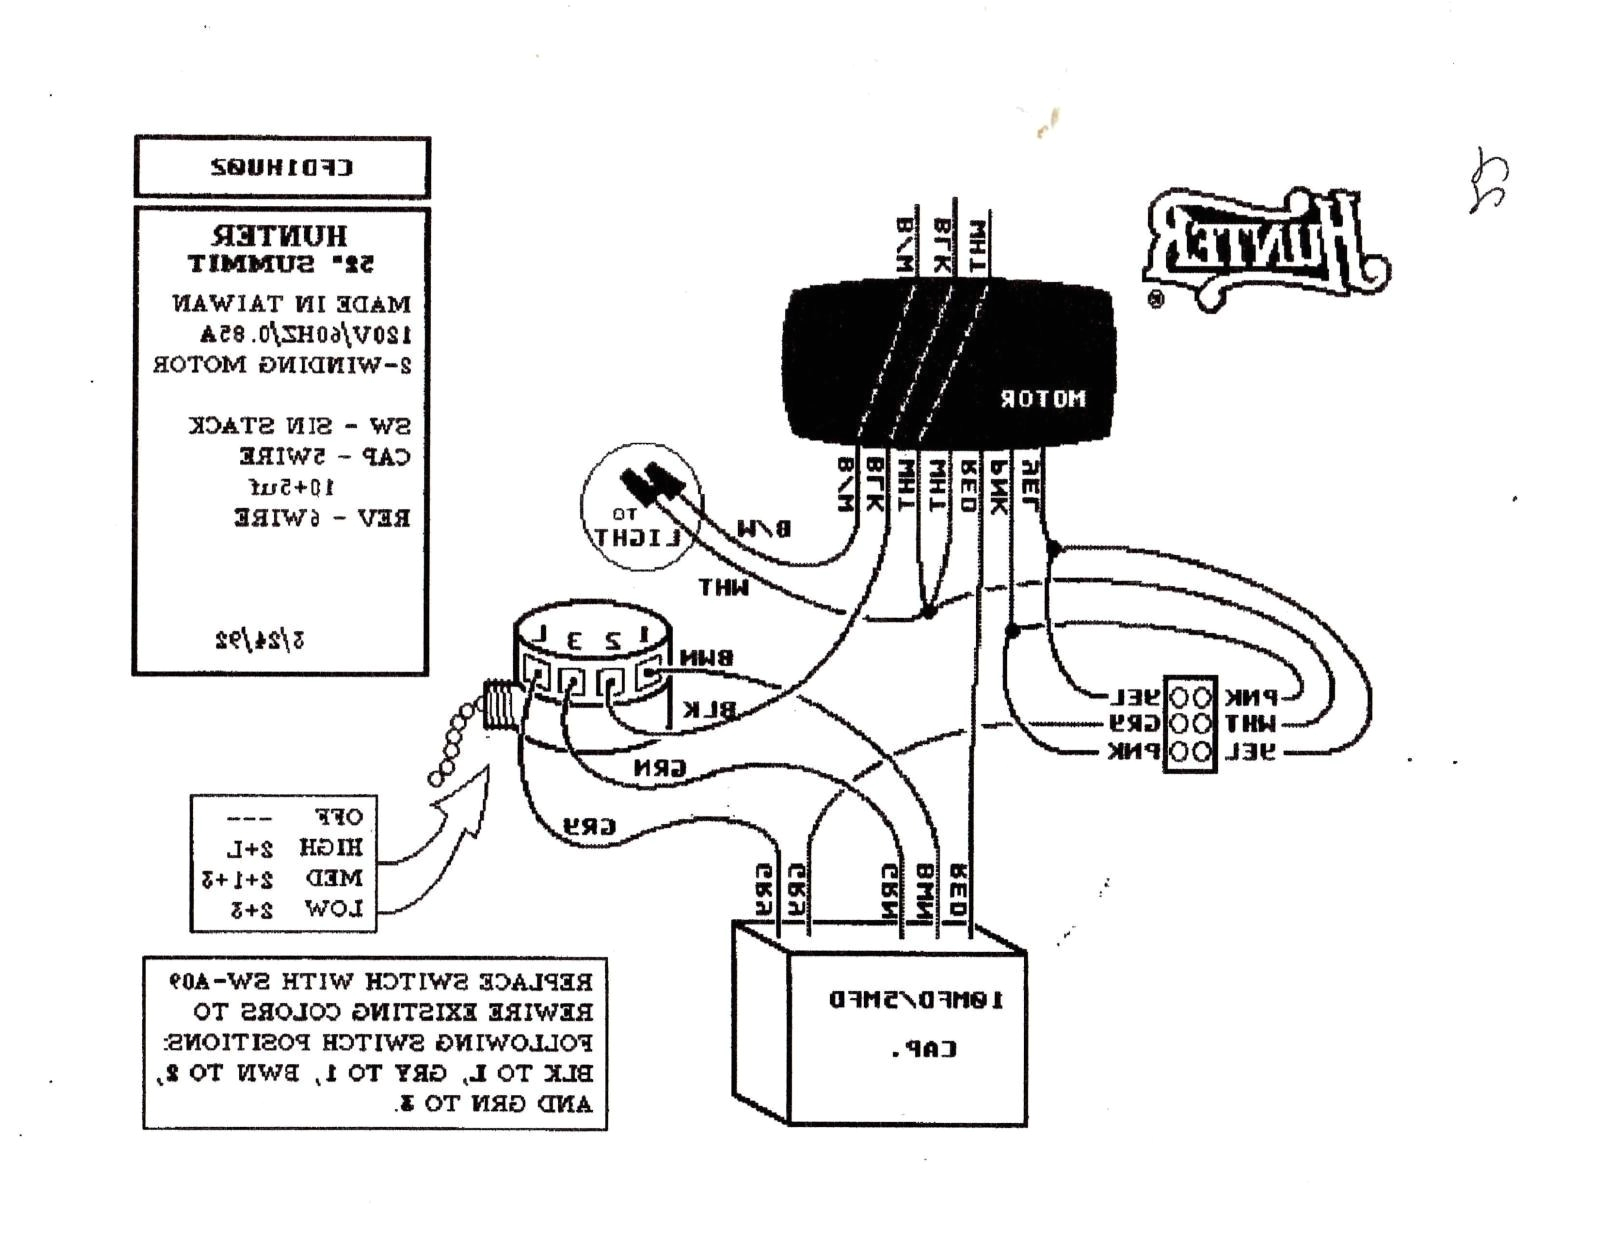 harbor breeze 3 speed fan switch wiring diagram luxury wiring diagram for harbor breeze ceiling fan switch refrence wiring of harbor breeze 3 speed fan switch wiring diagram jpg